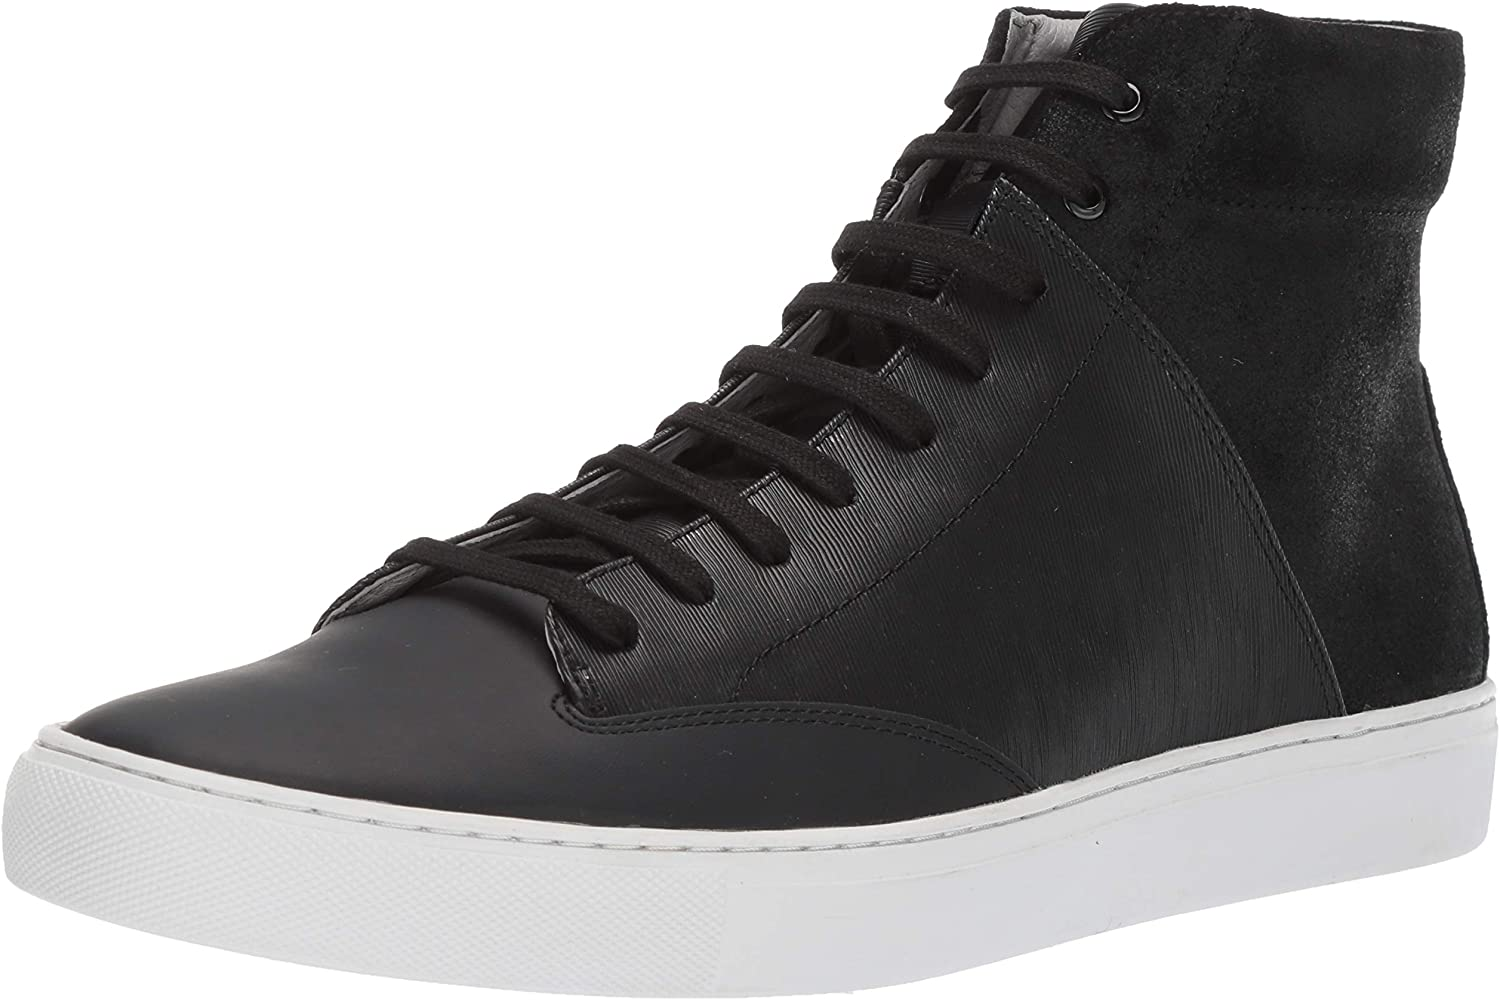 TCG Men's Premium shoes Porter All Leather High Top Laces Sneaker Black